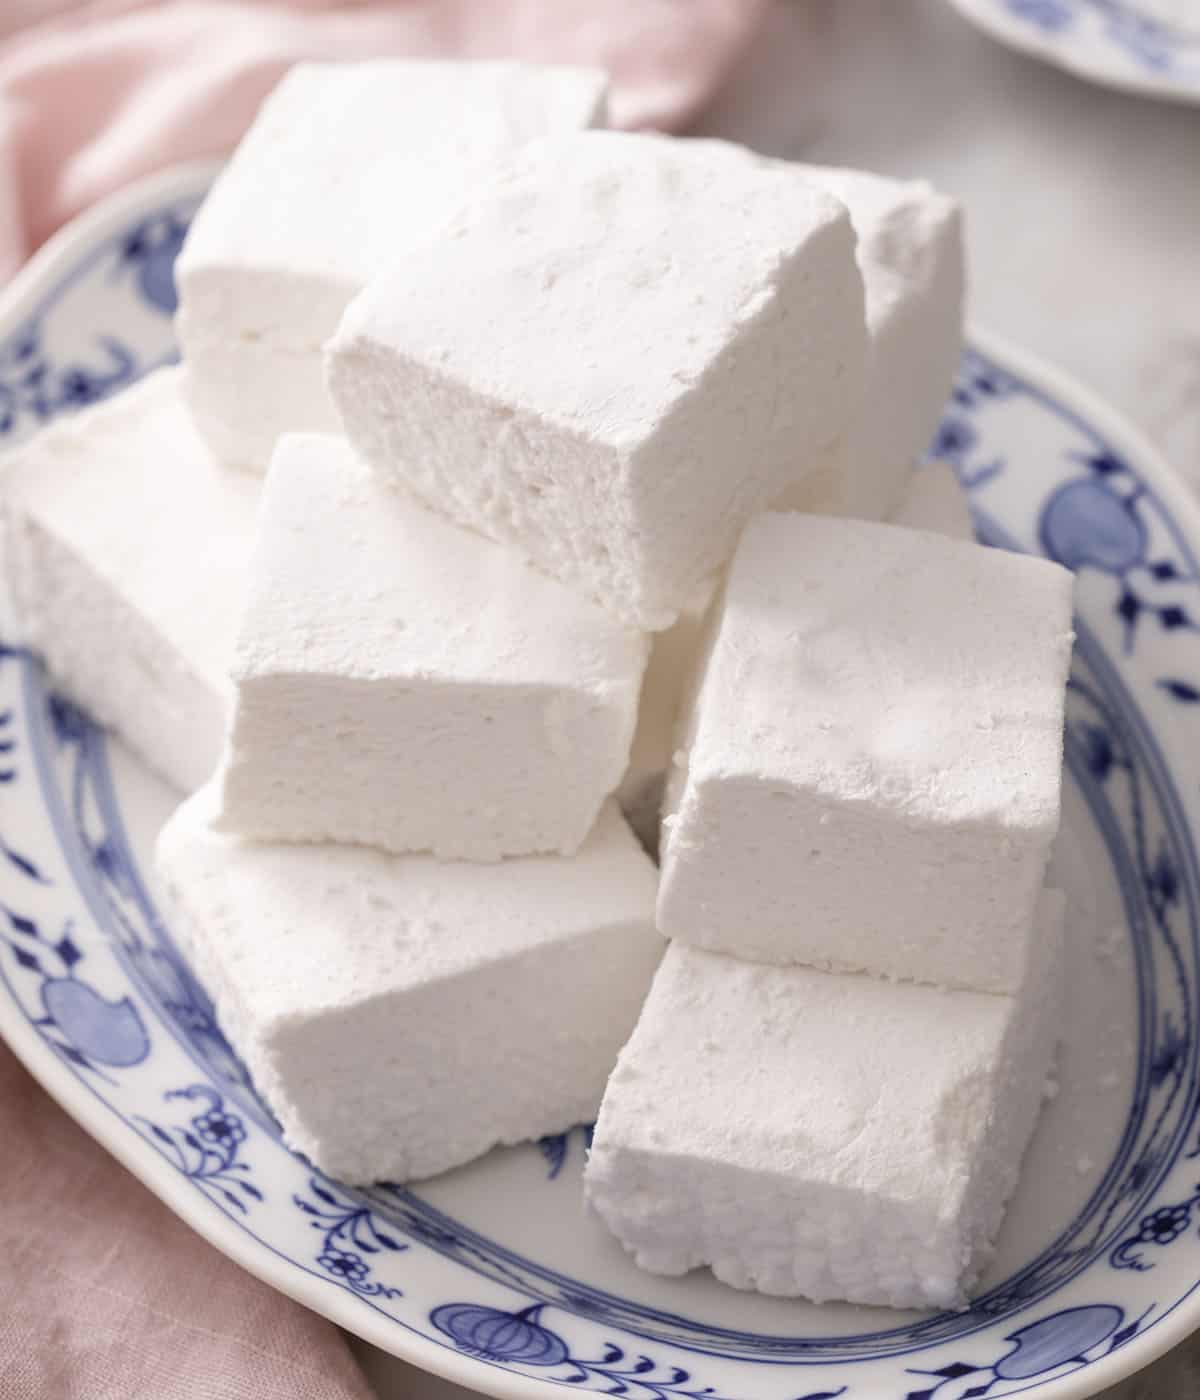 A pile of marshmallows on a blue and white serving dish.